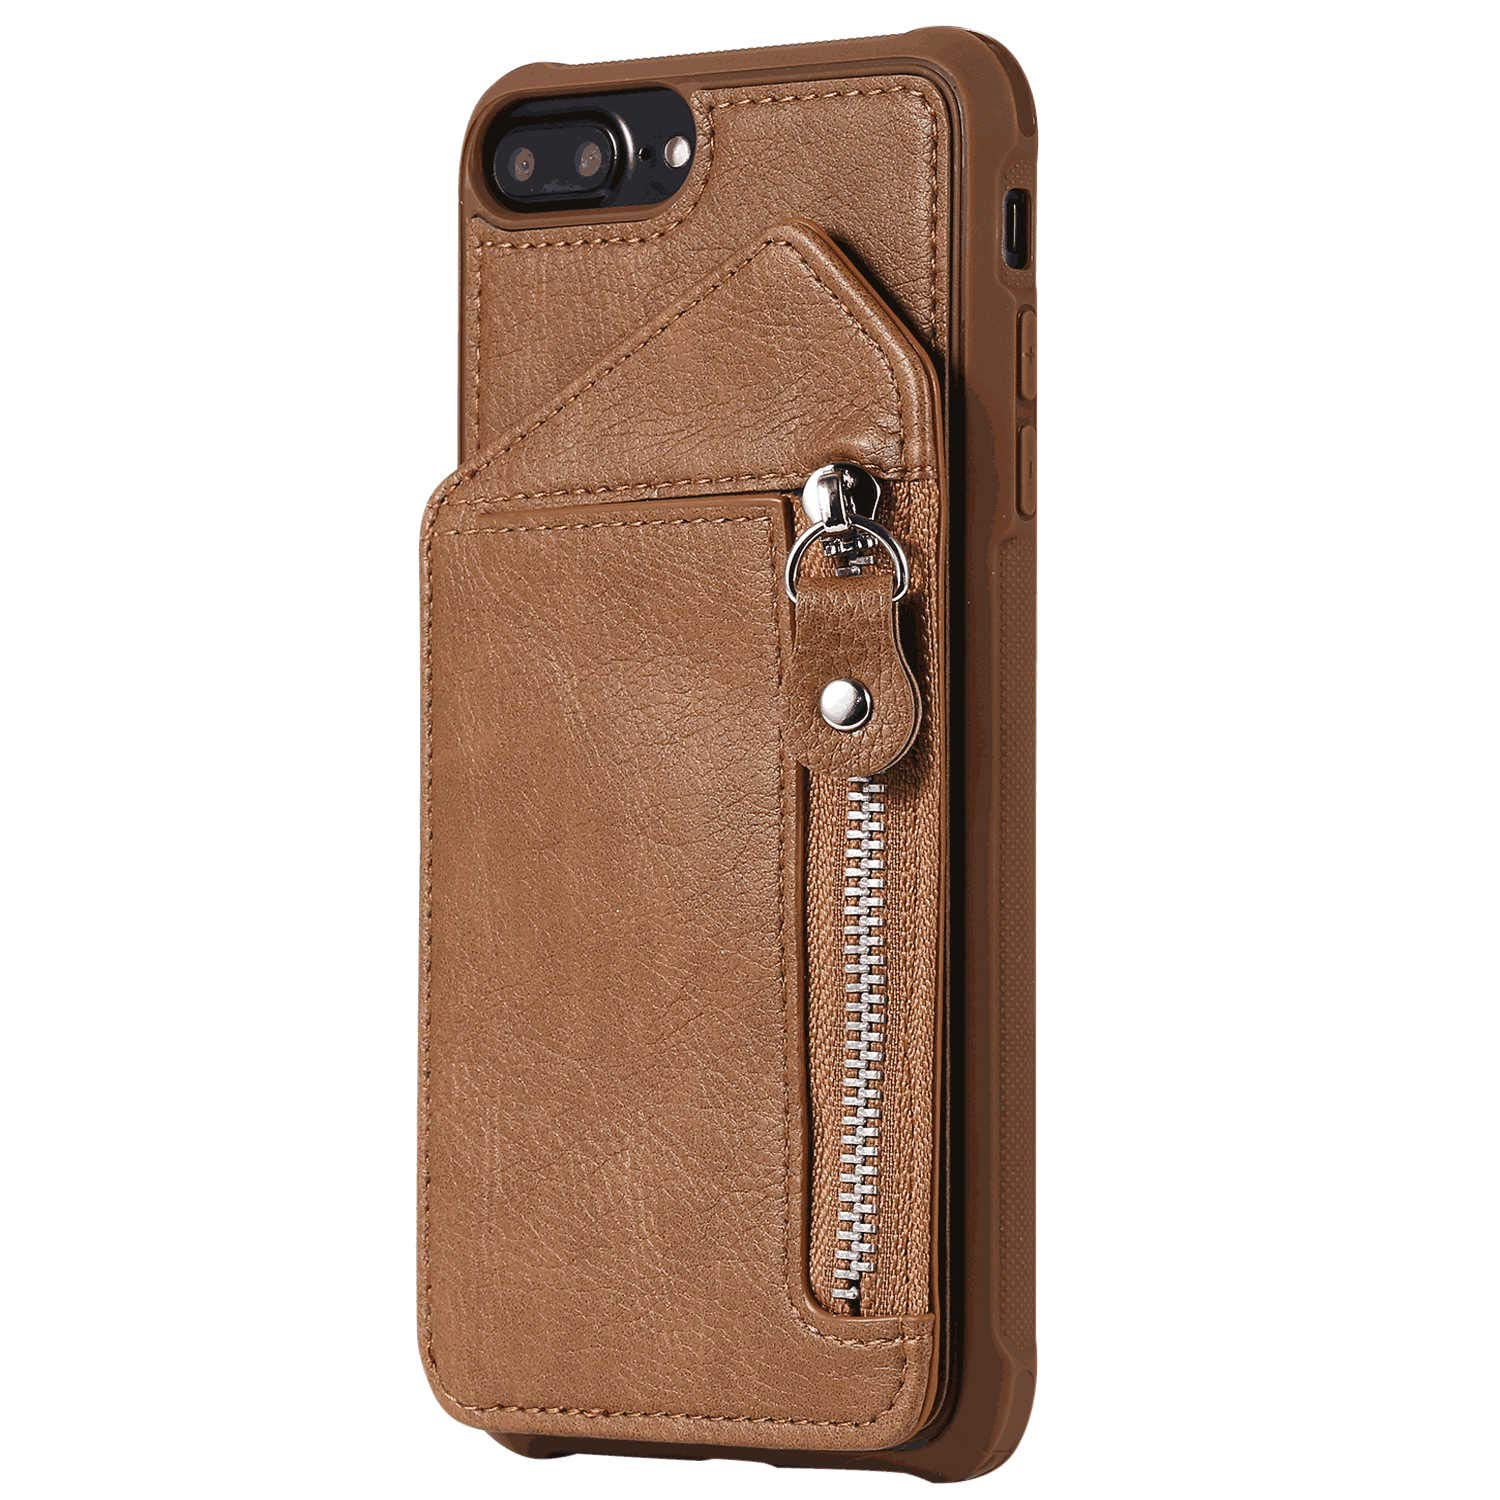 Cover for Samsung Galaxy S9 Leather Cell Phone Cover Card Holders Extra-Durable Business Kickstand with Free Waterproof-Bag Samsung Galaxy S9 Flip Case